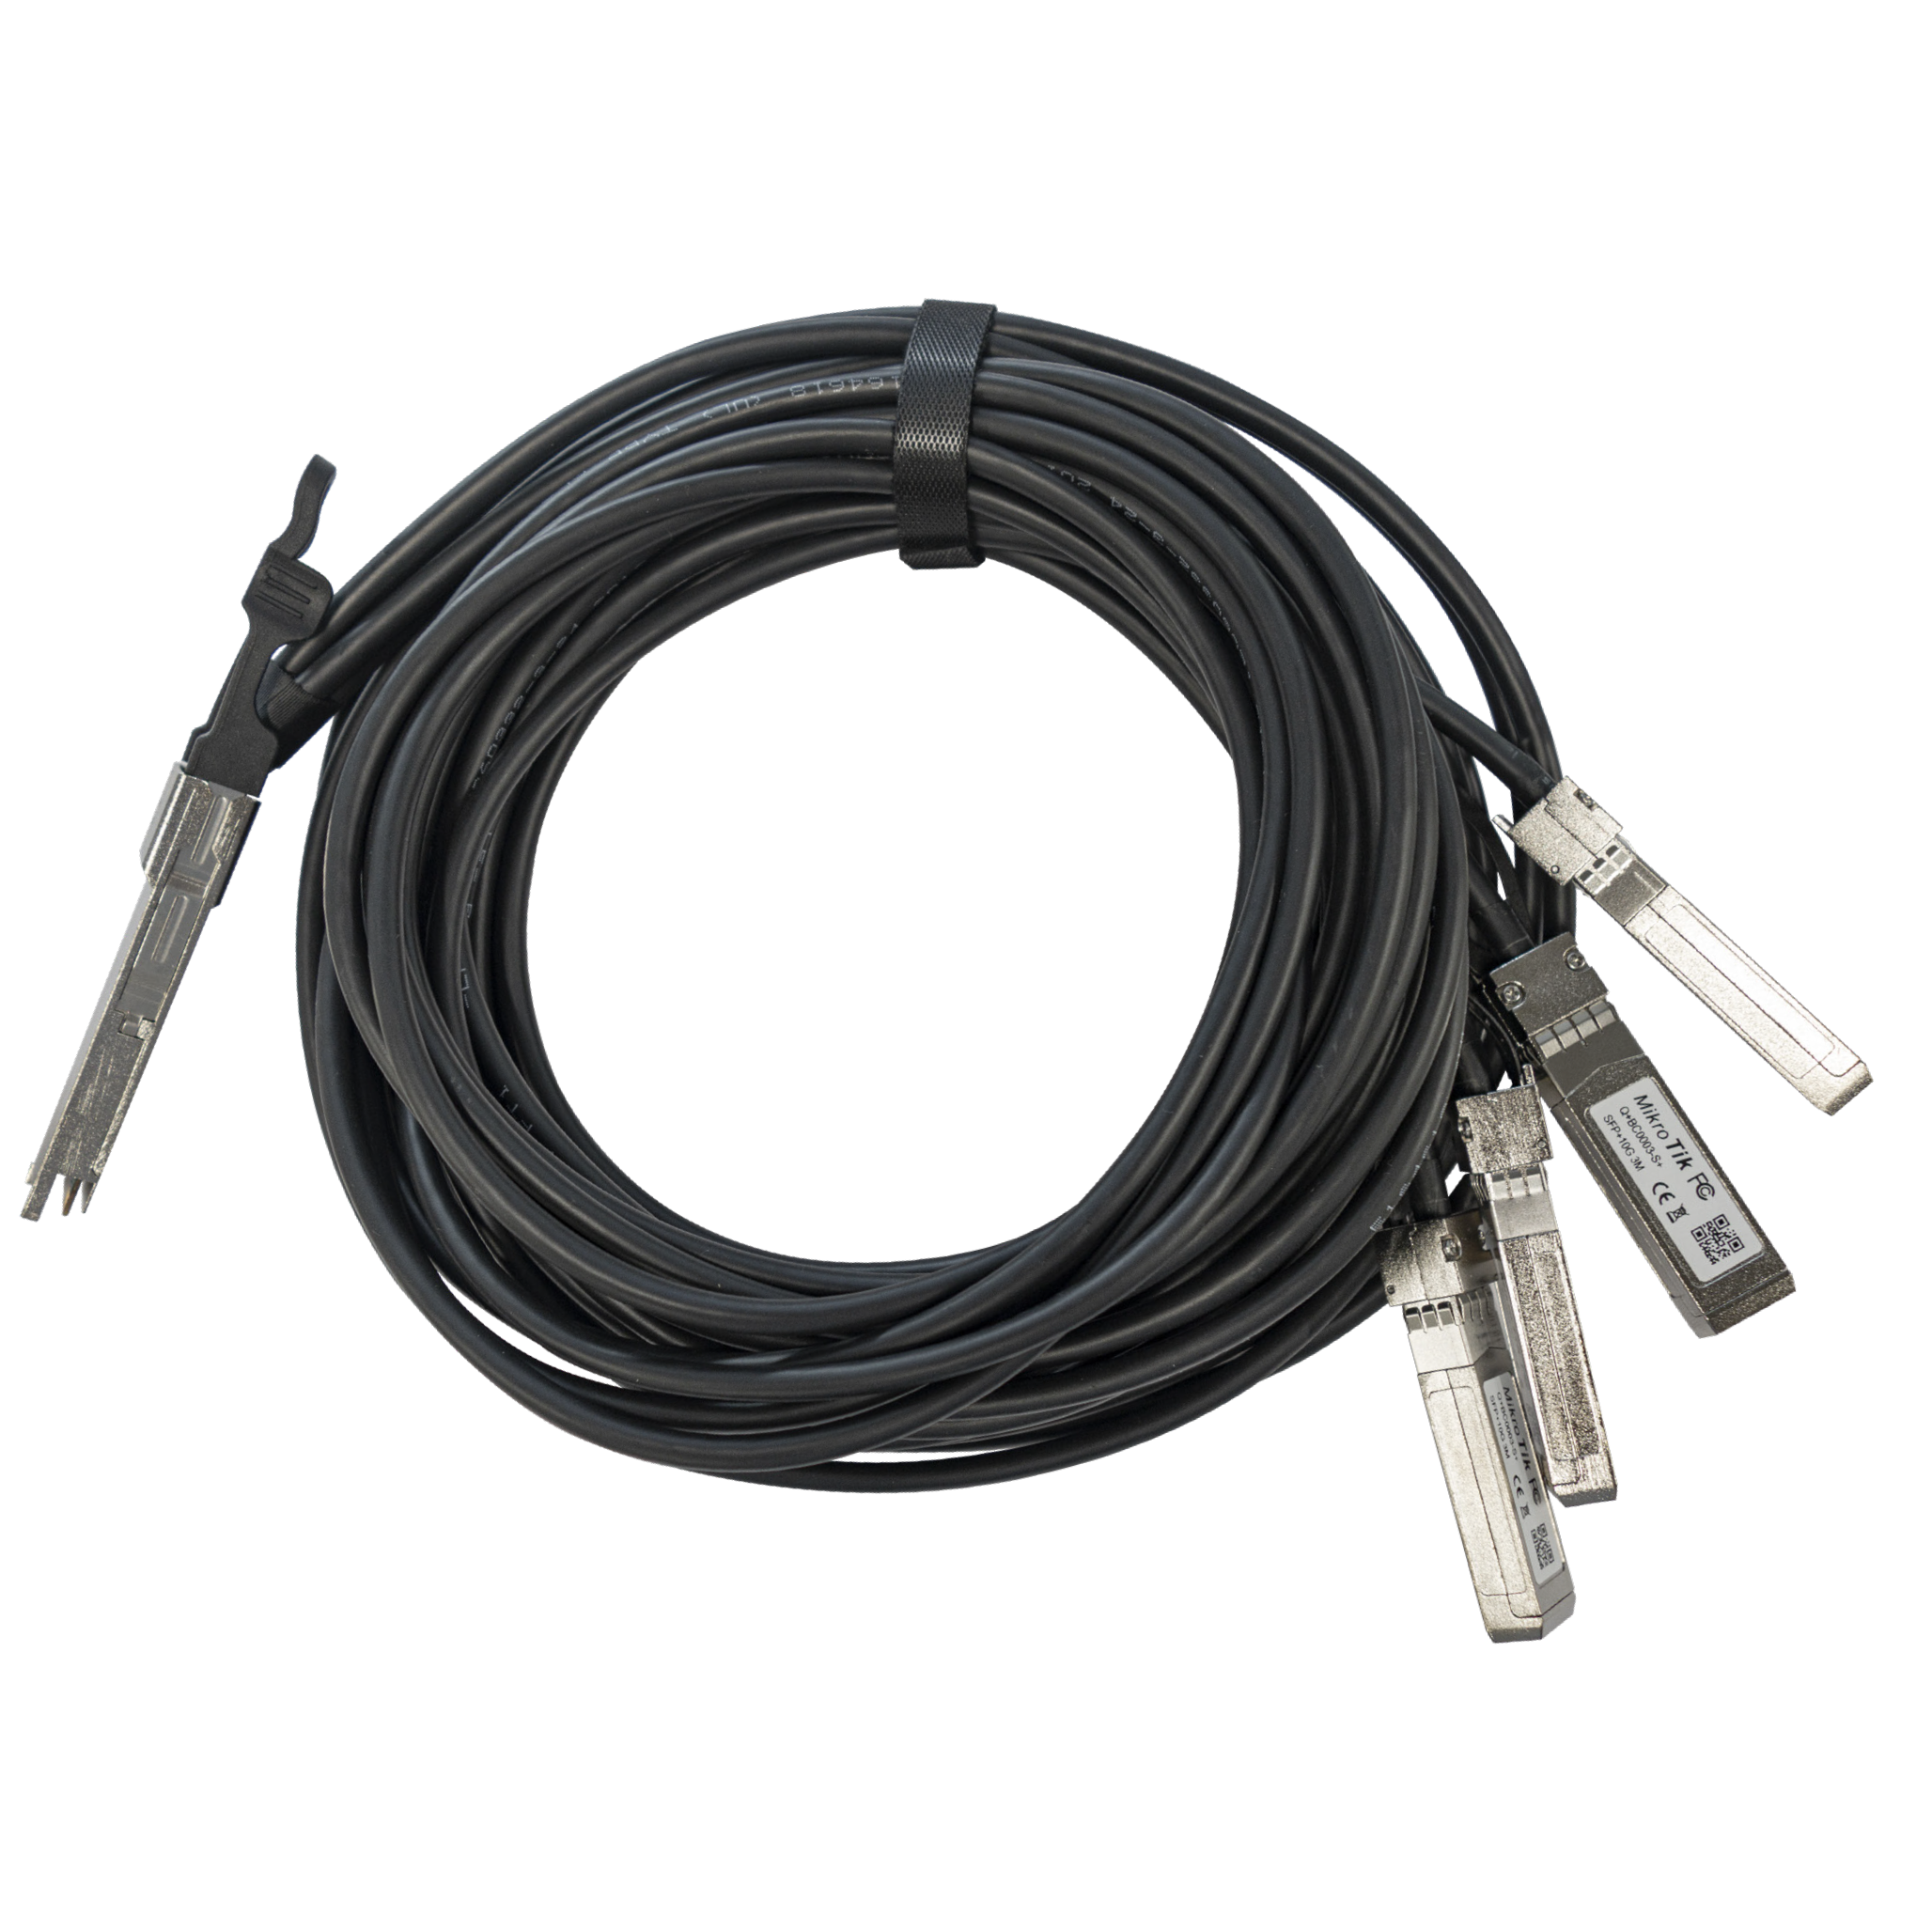 MikroTik Q+BC0003-S+ 40Gbps to 4x 10Gbps Brake-Out Cable - 3m